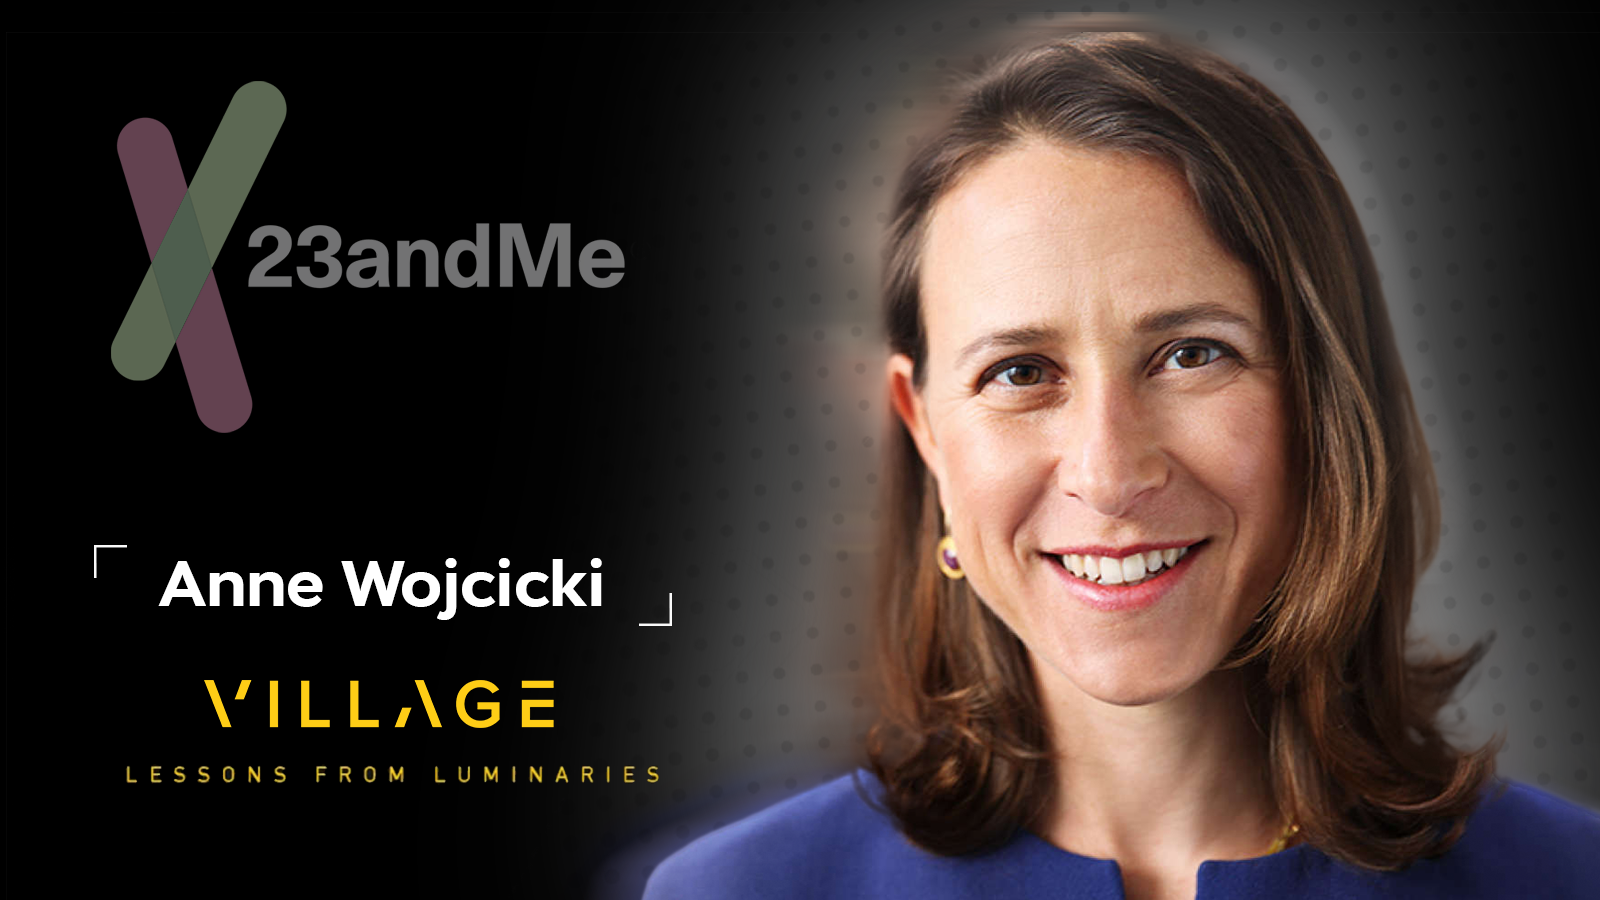 Lessons From Luminaries with Anne Wojcicki